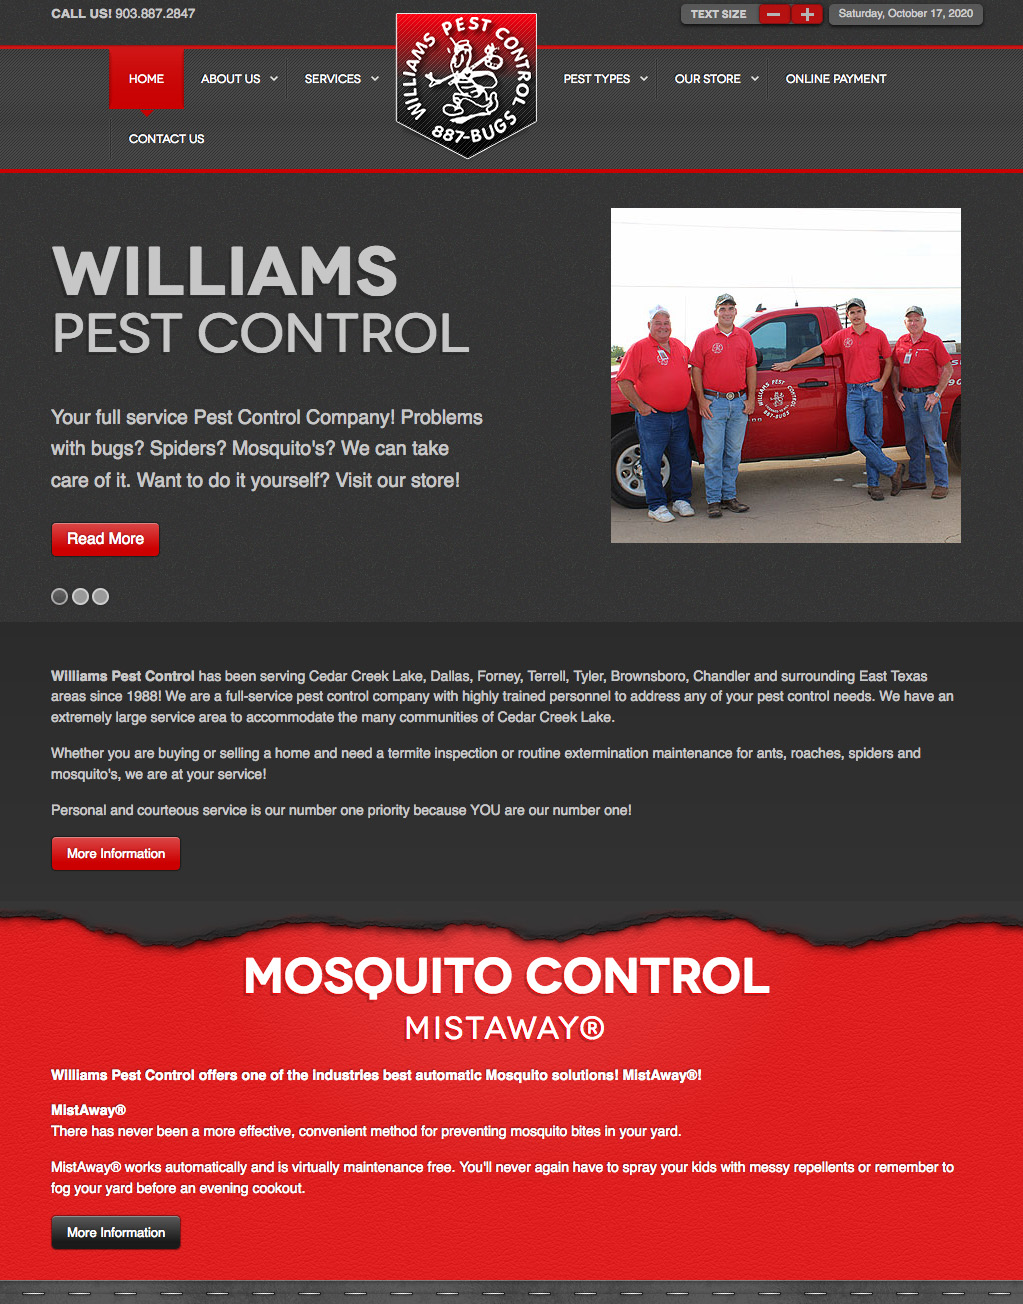 Williams Pest Control